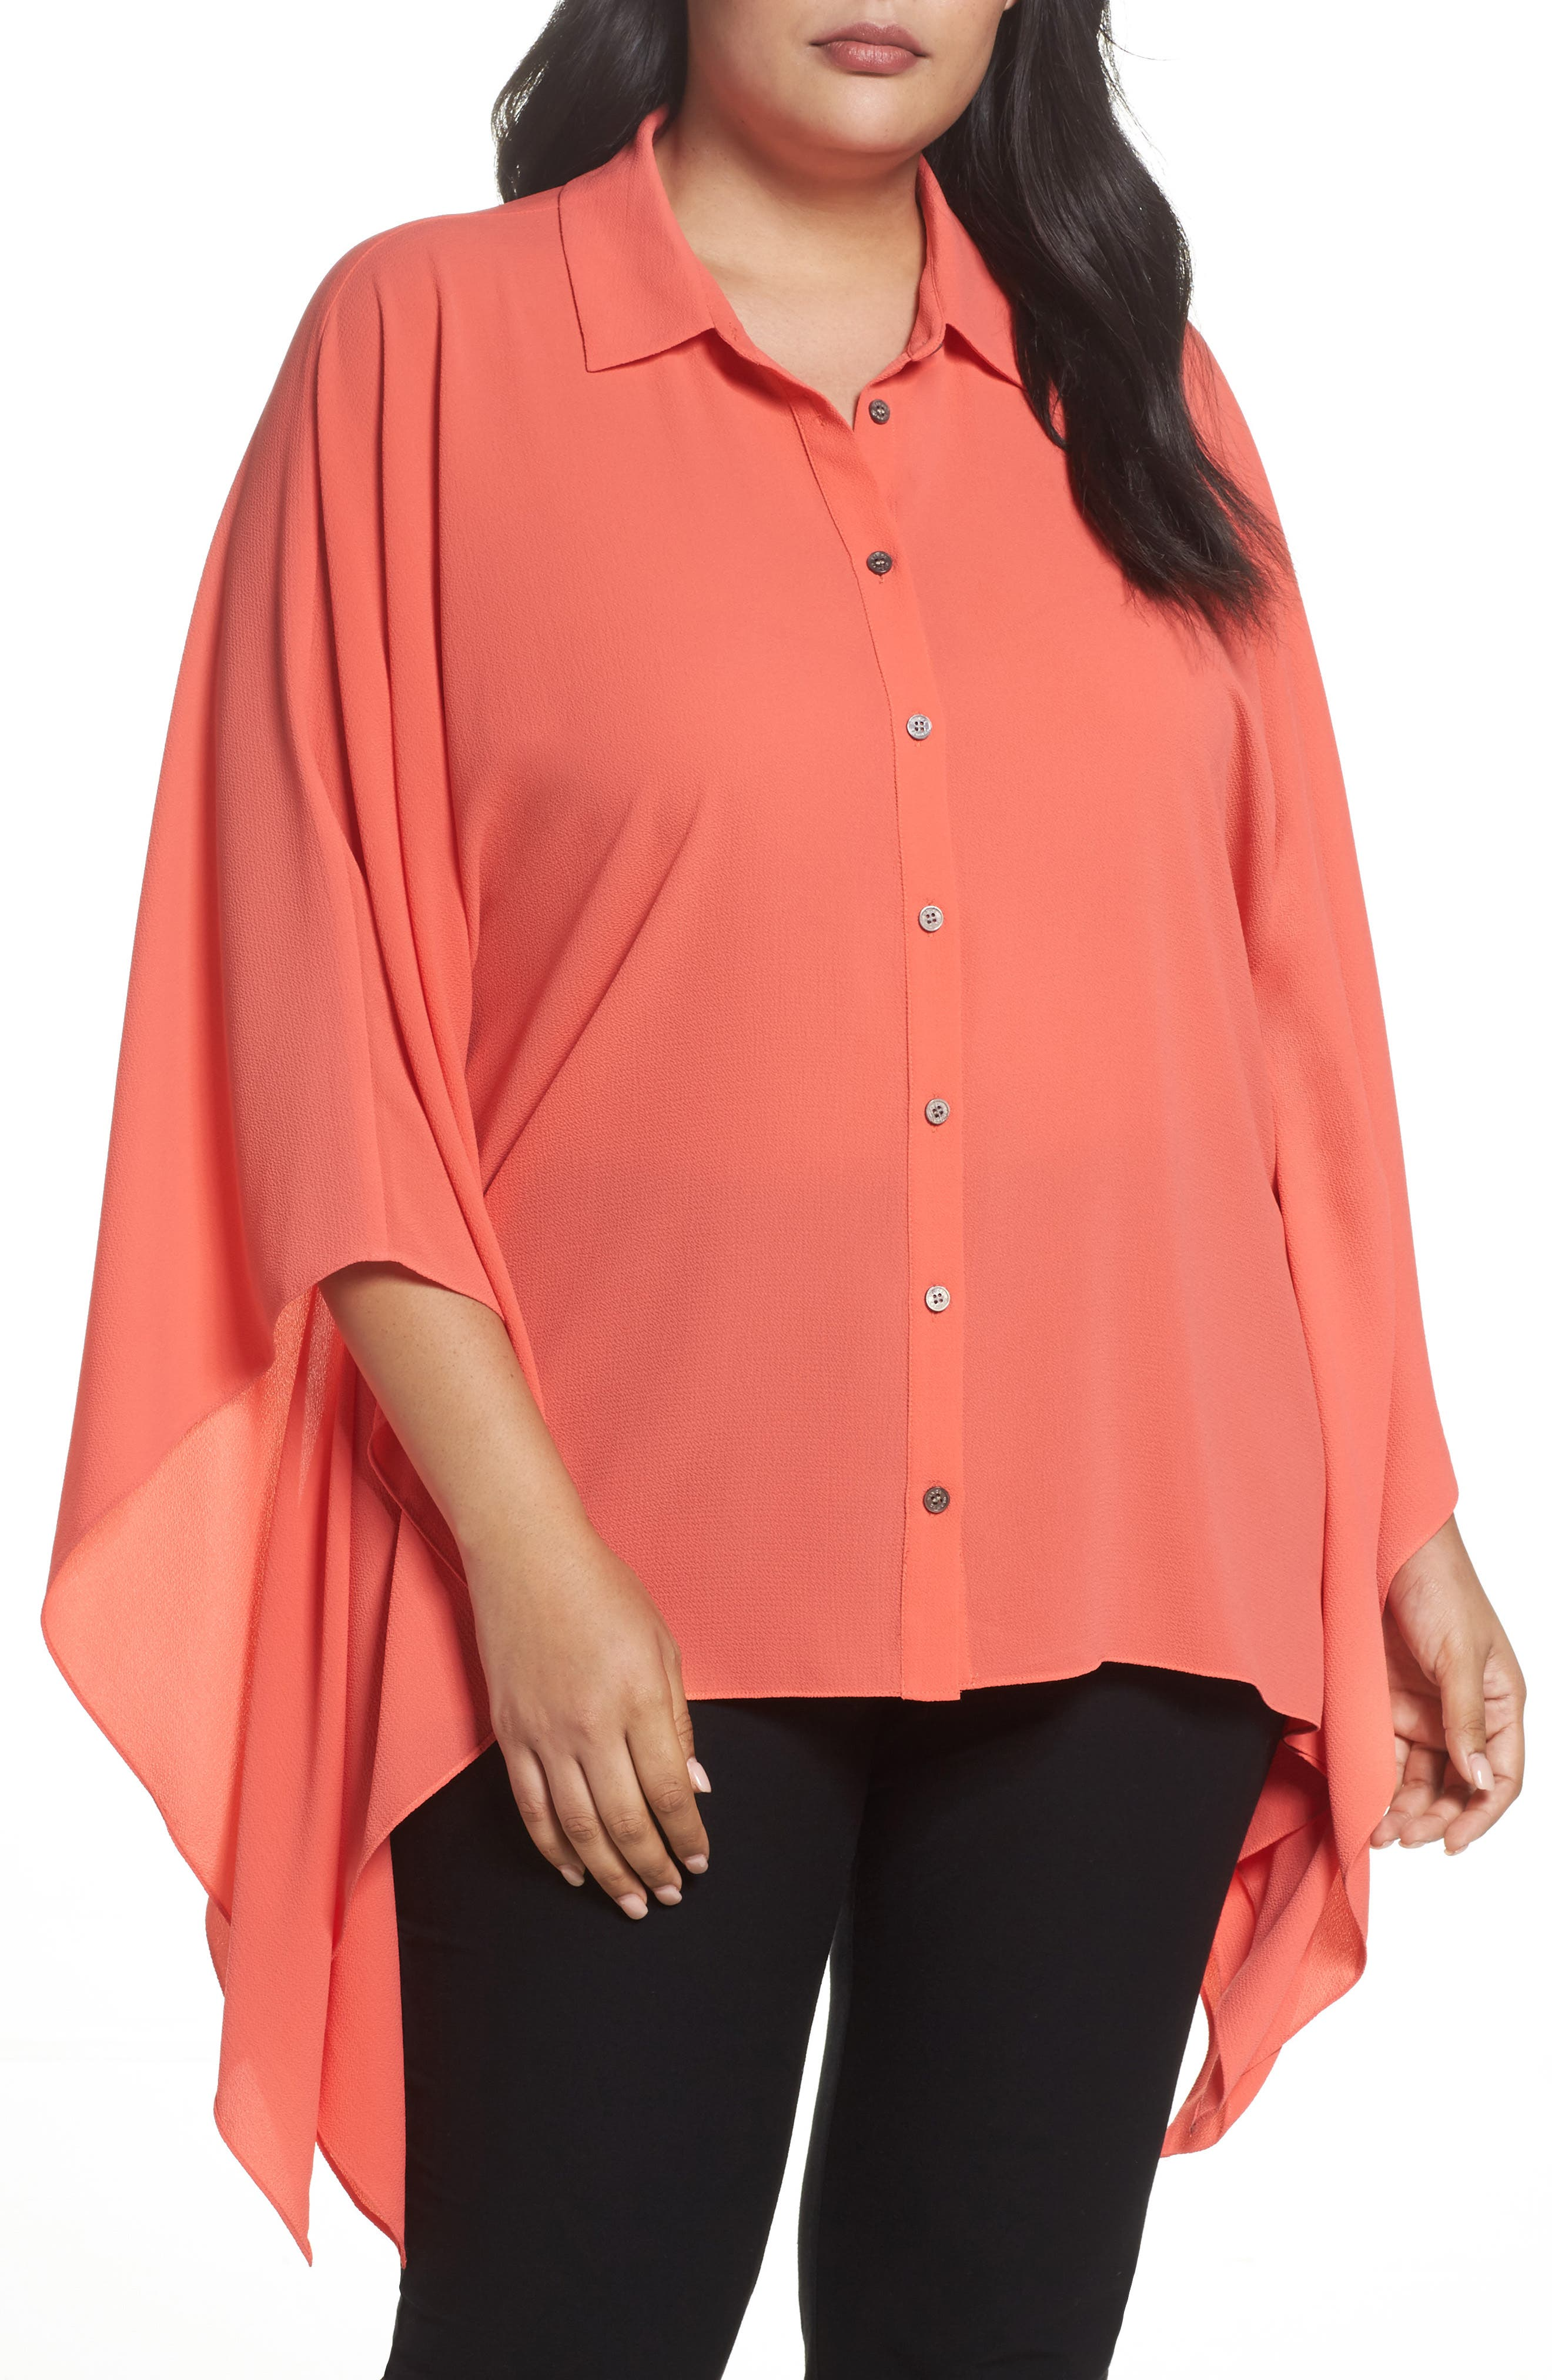 Alternate Image 1 Selected - Vince Camuto Button Down Collared Poncho Top (Plus Size)